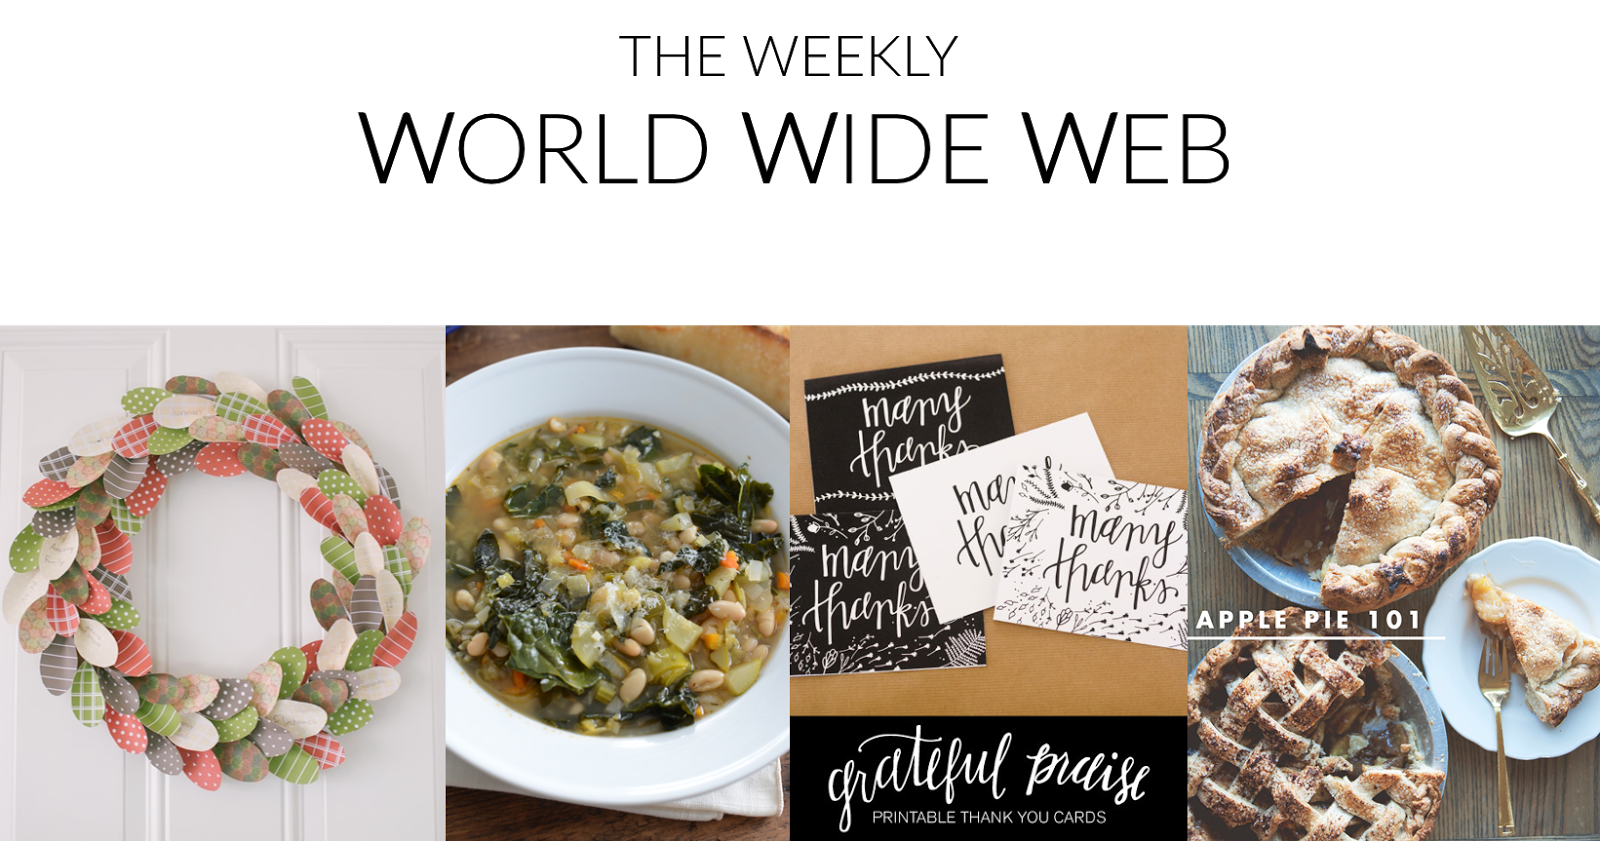 Peachy Keen Blog: The Weekly World Wide Web. Thanksgiving decor, winter soups, and pie!